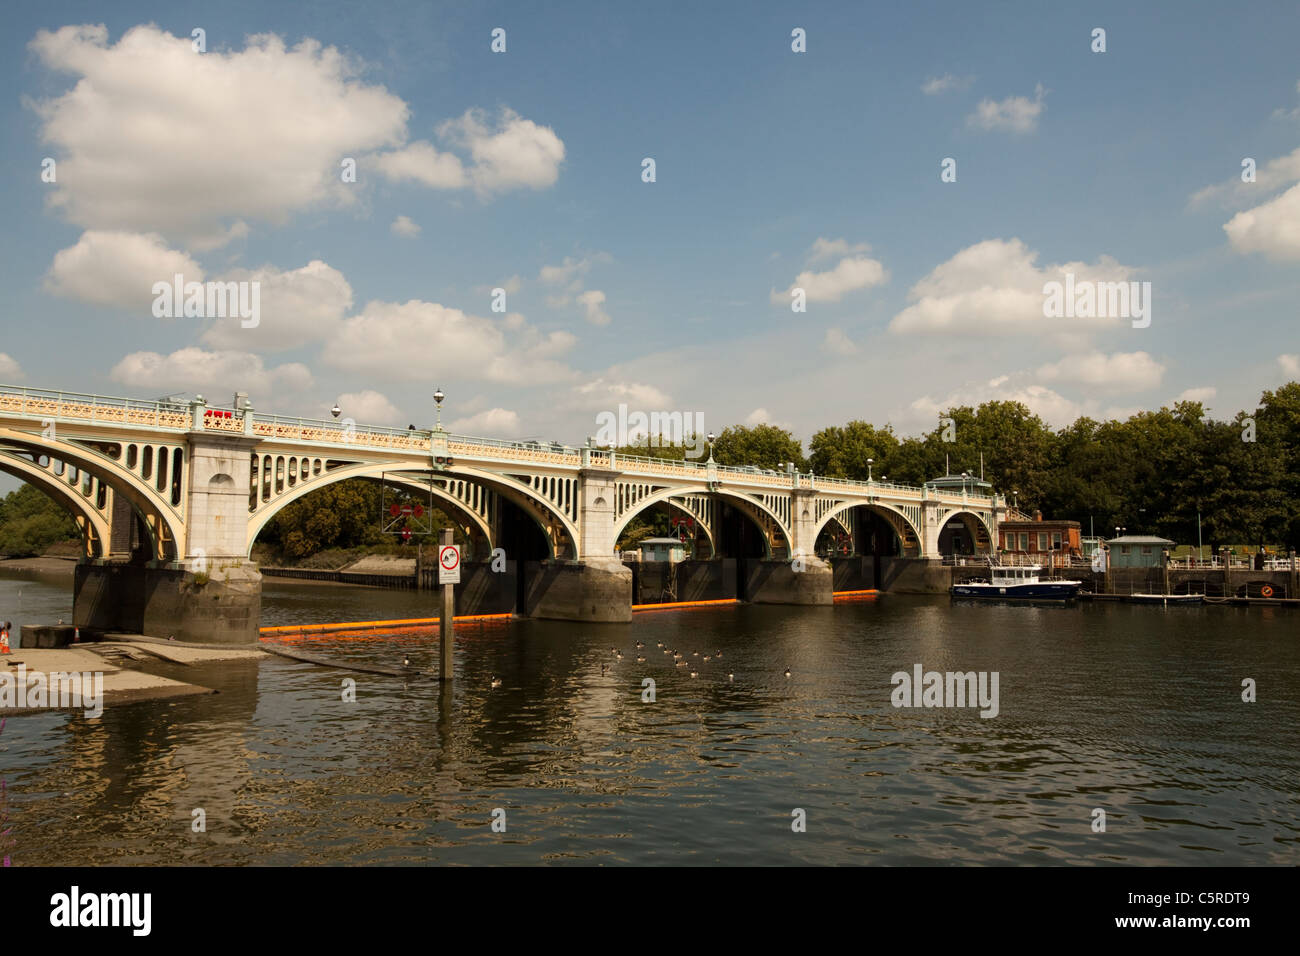 The River Thames  with Richmond Lock and Weir, England, UK Stock Photo